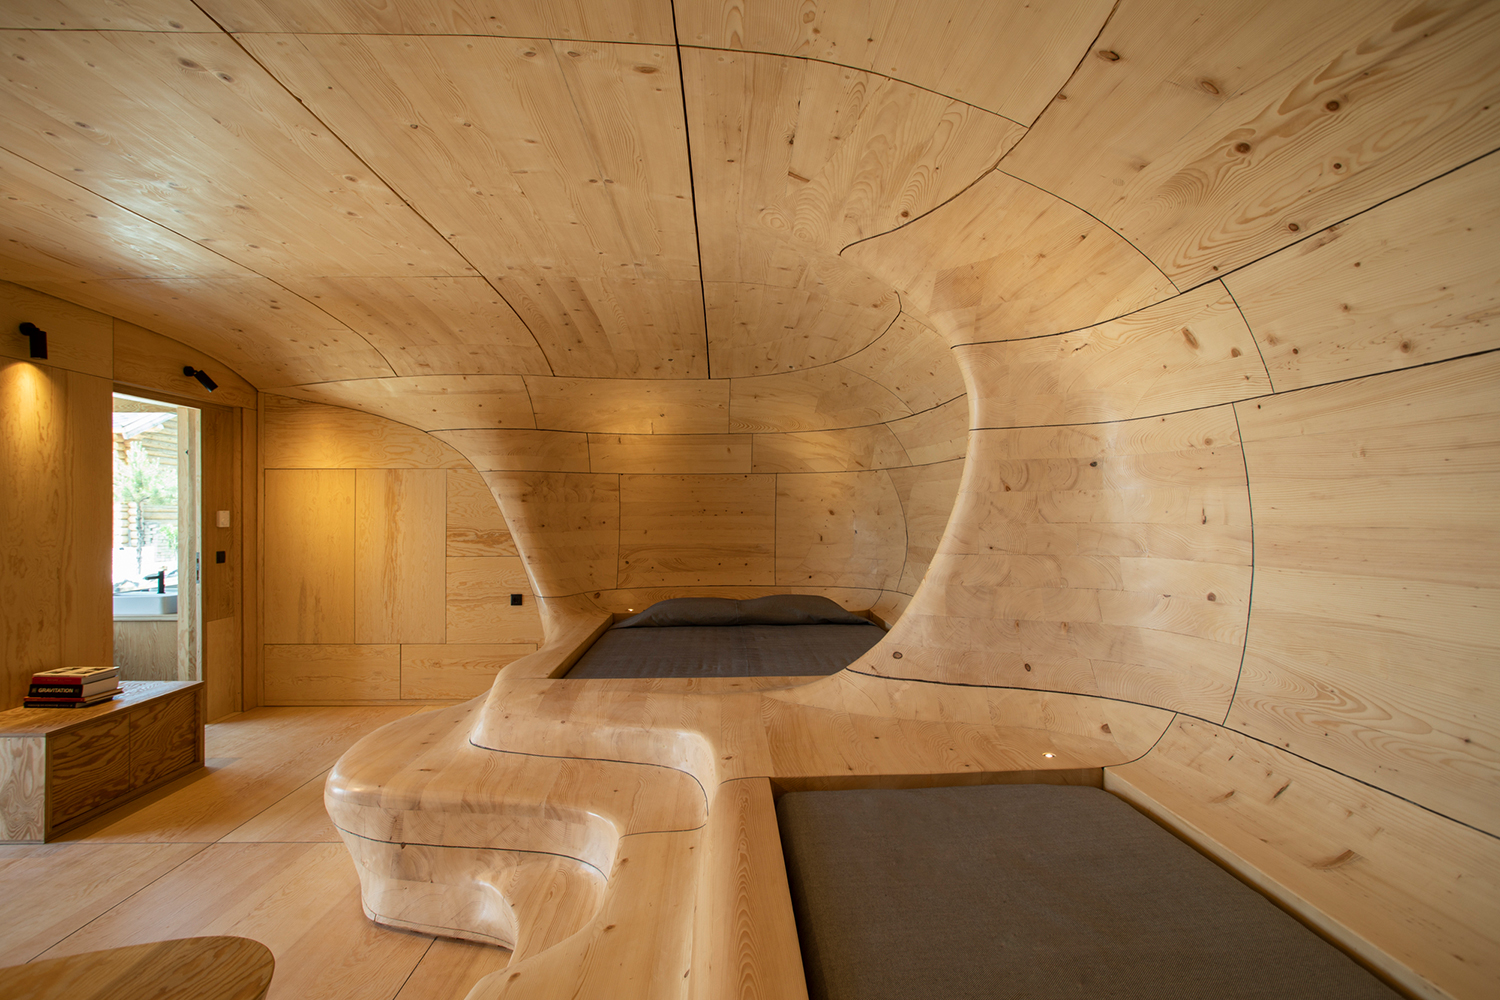 Wooden Cave, the Natural Greek Hotel Suite hotel suites The Most Luxurious Hotel Suites In Hong Kong, by AD wooden cave trikala korinthias greece tenon architecture 2 hotel suites The Most Luxurious Hotel Suites In Hong Kong, by AD wooden cave trikala korinthias greece tenon architecture 2